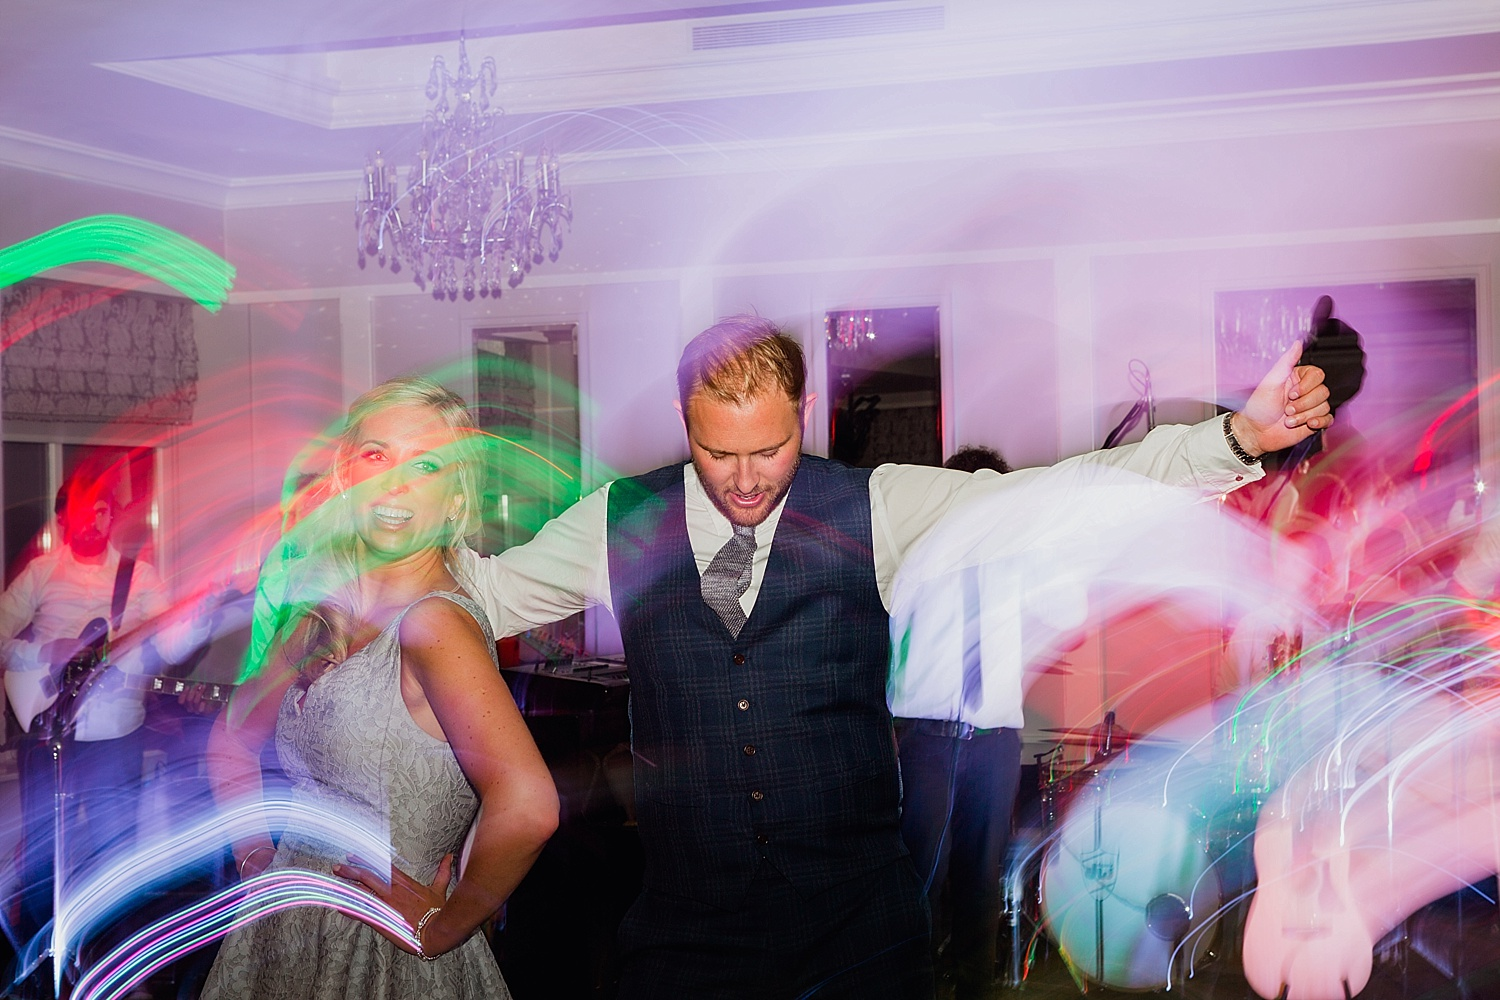 ashford_lodge_wedding-ashford_castle_wedding-best_of_2016_sharon_kee_photography_0125